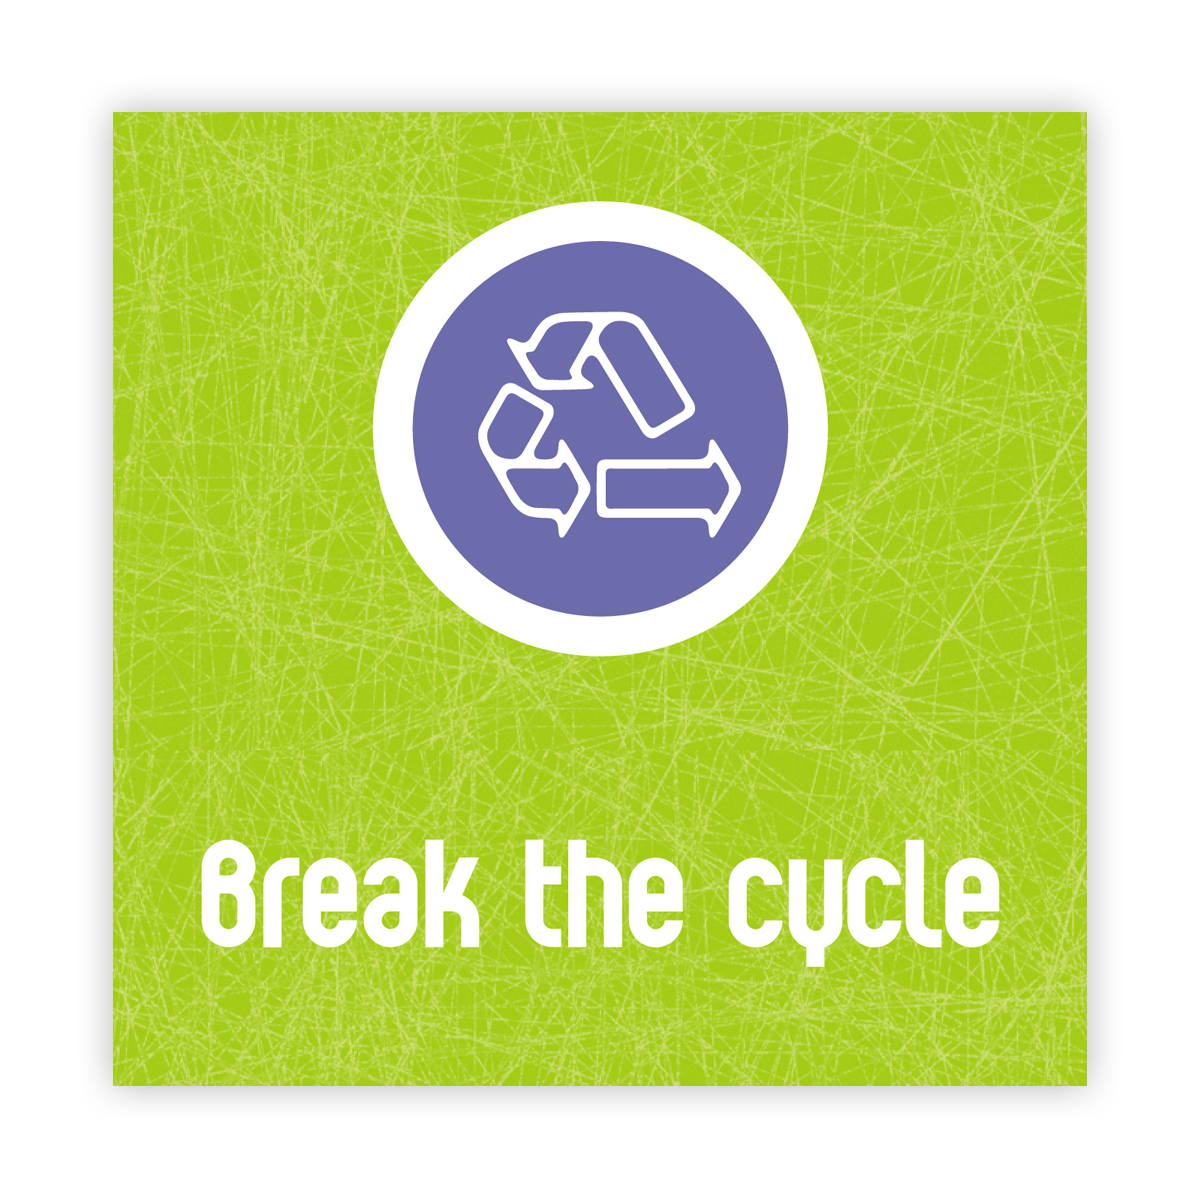 Break the cycle campaign: leaflet